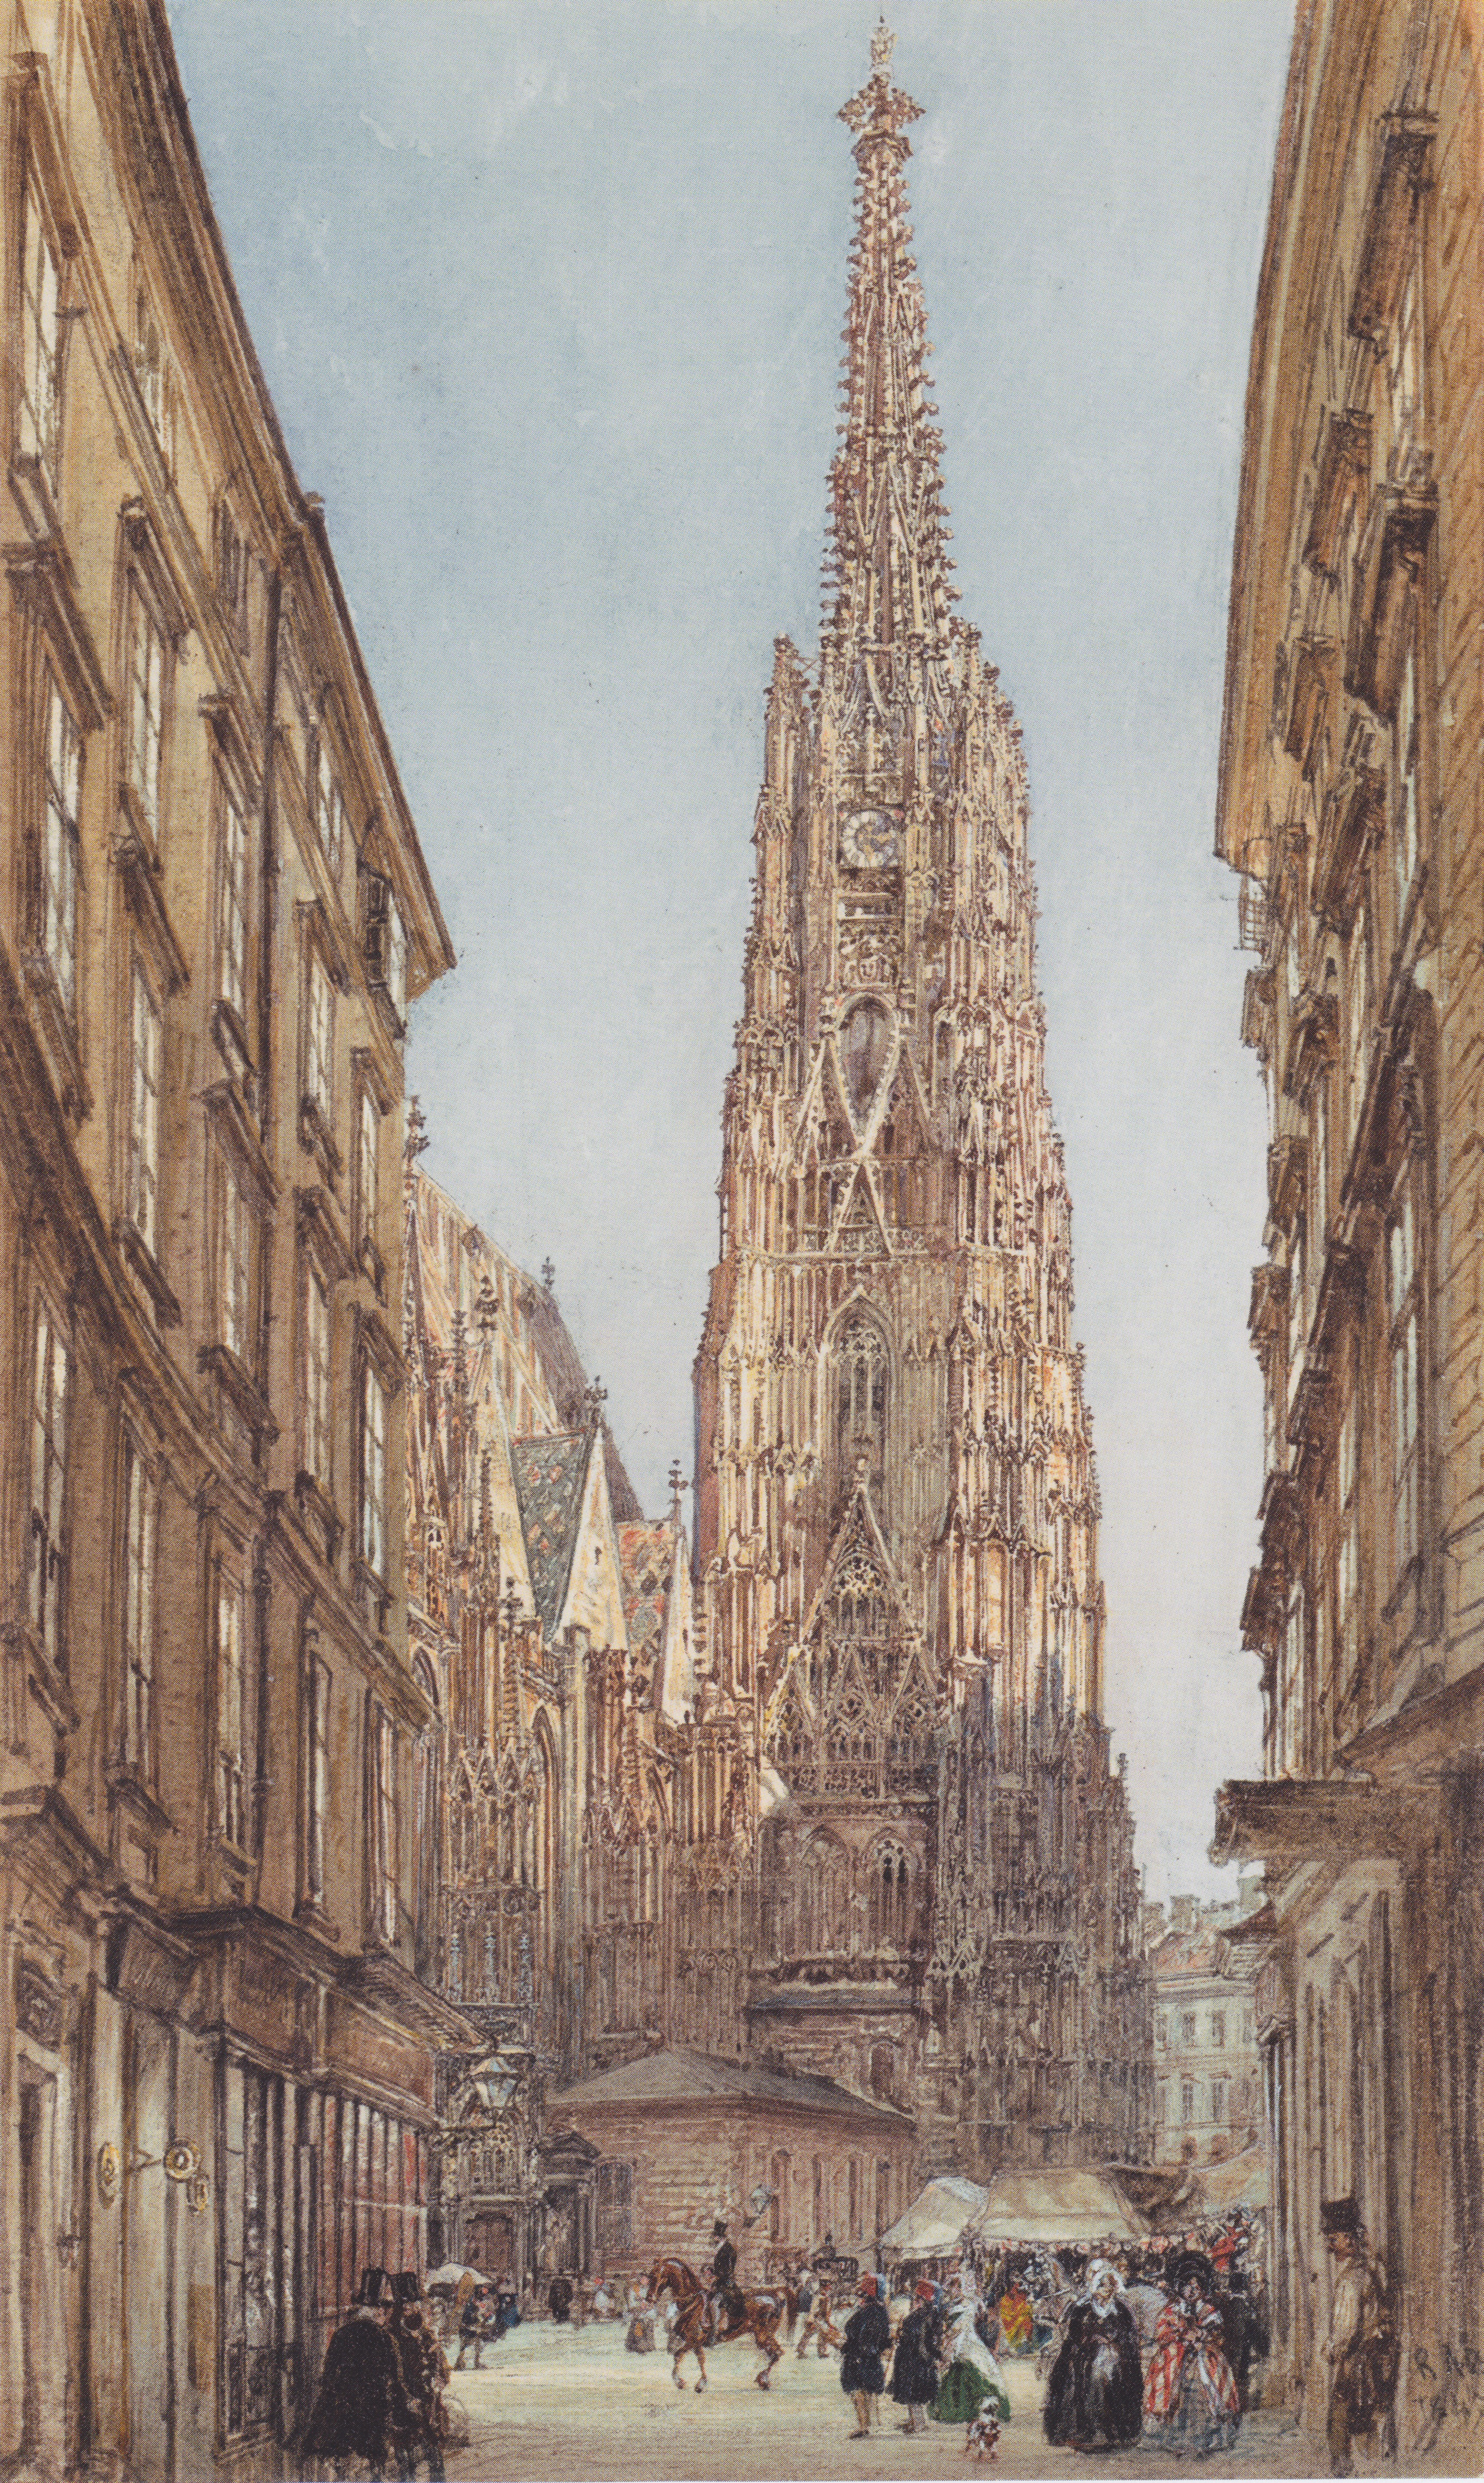 The St. Stephen's Cathedral in Vienna, 1847